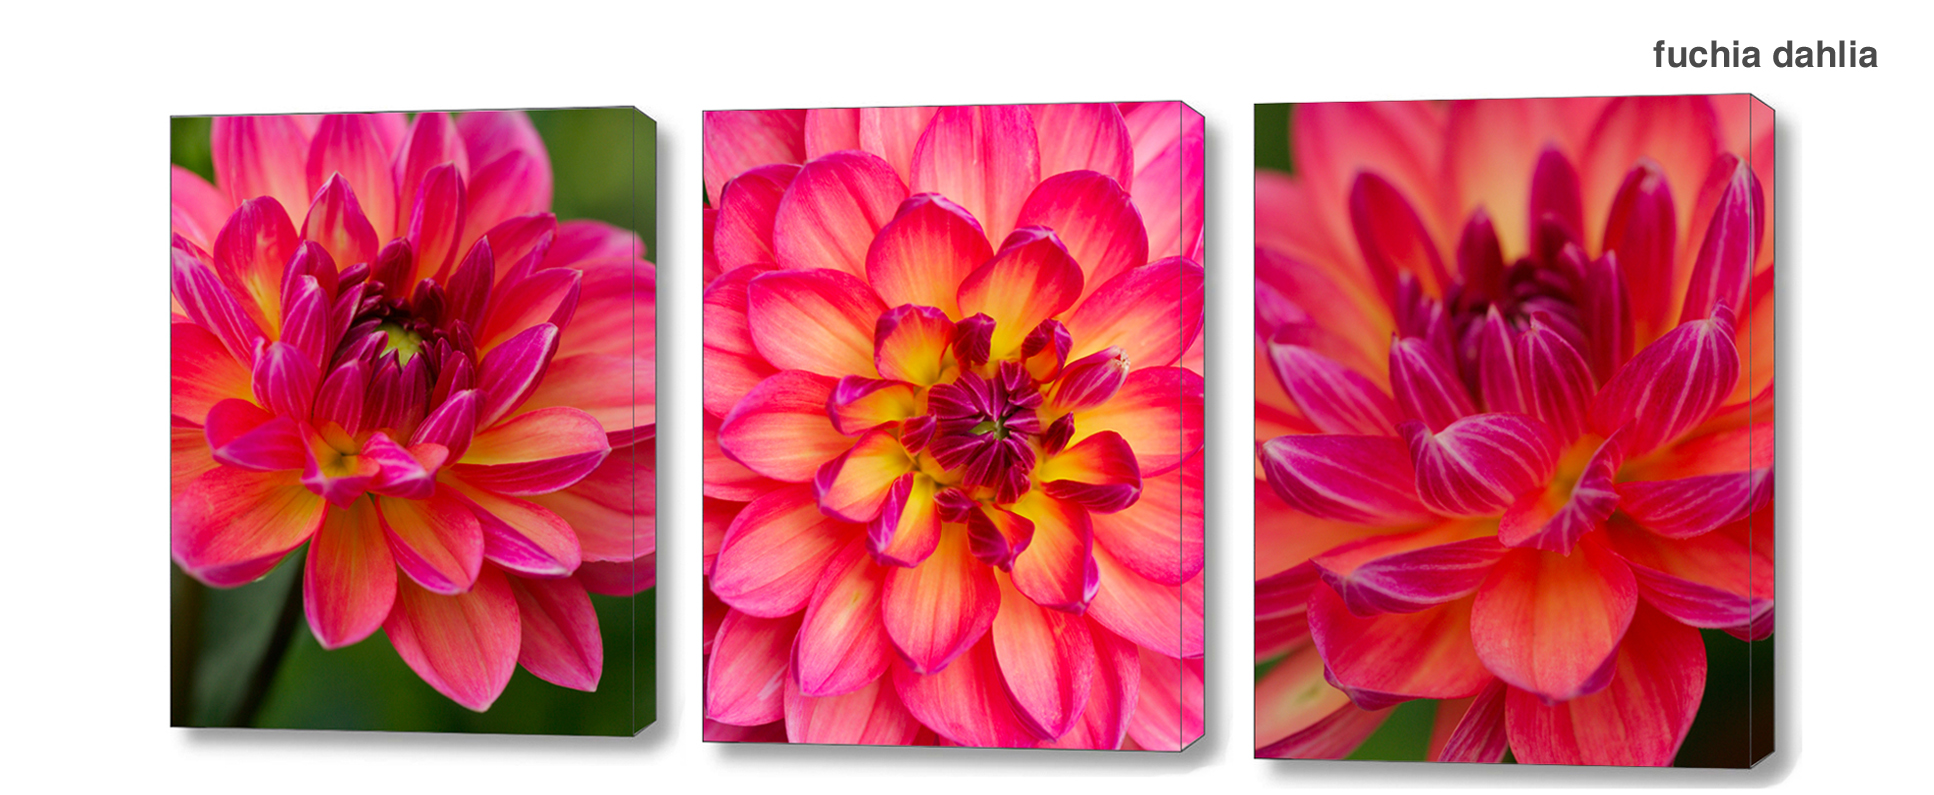 fuchia dahlia series - Floral Series Wall Decor Macro Photography Matted & Giclée Canvas Prints